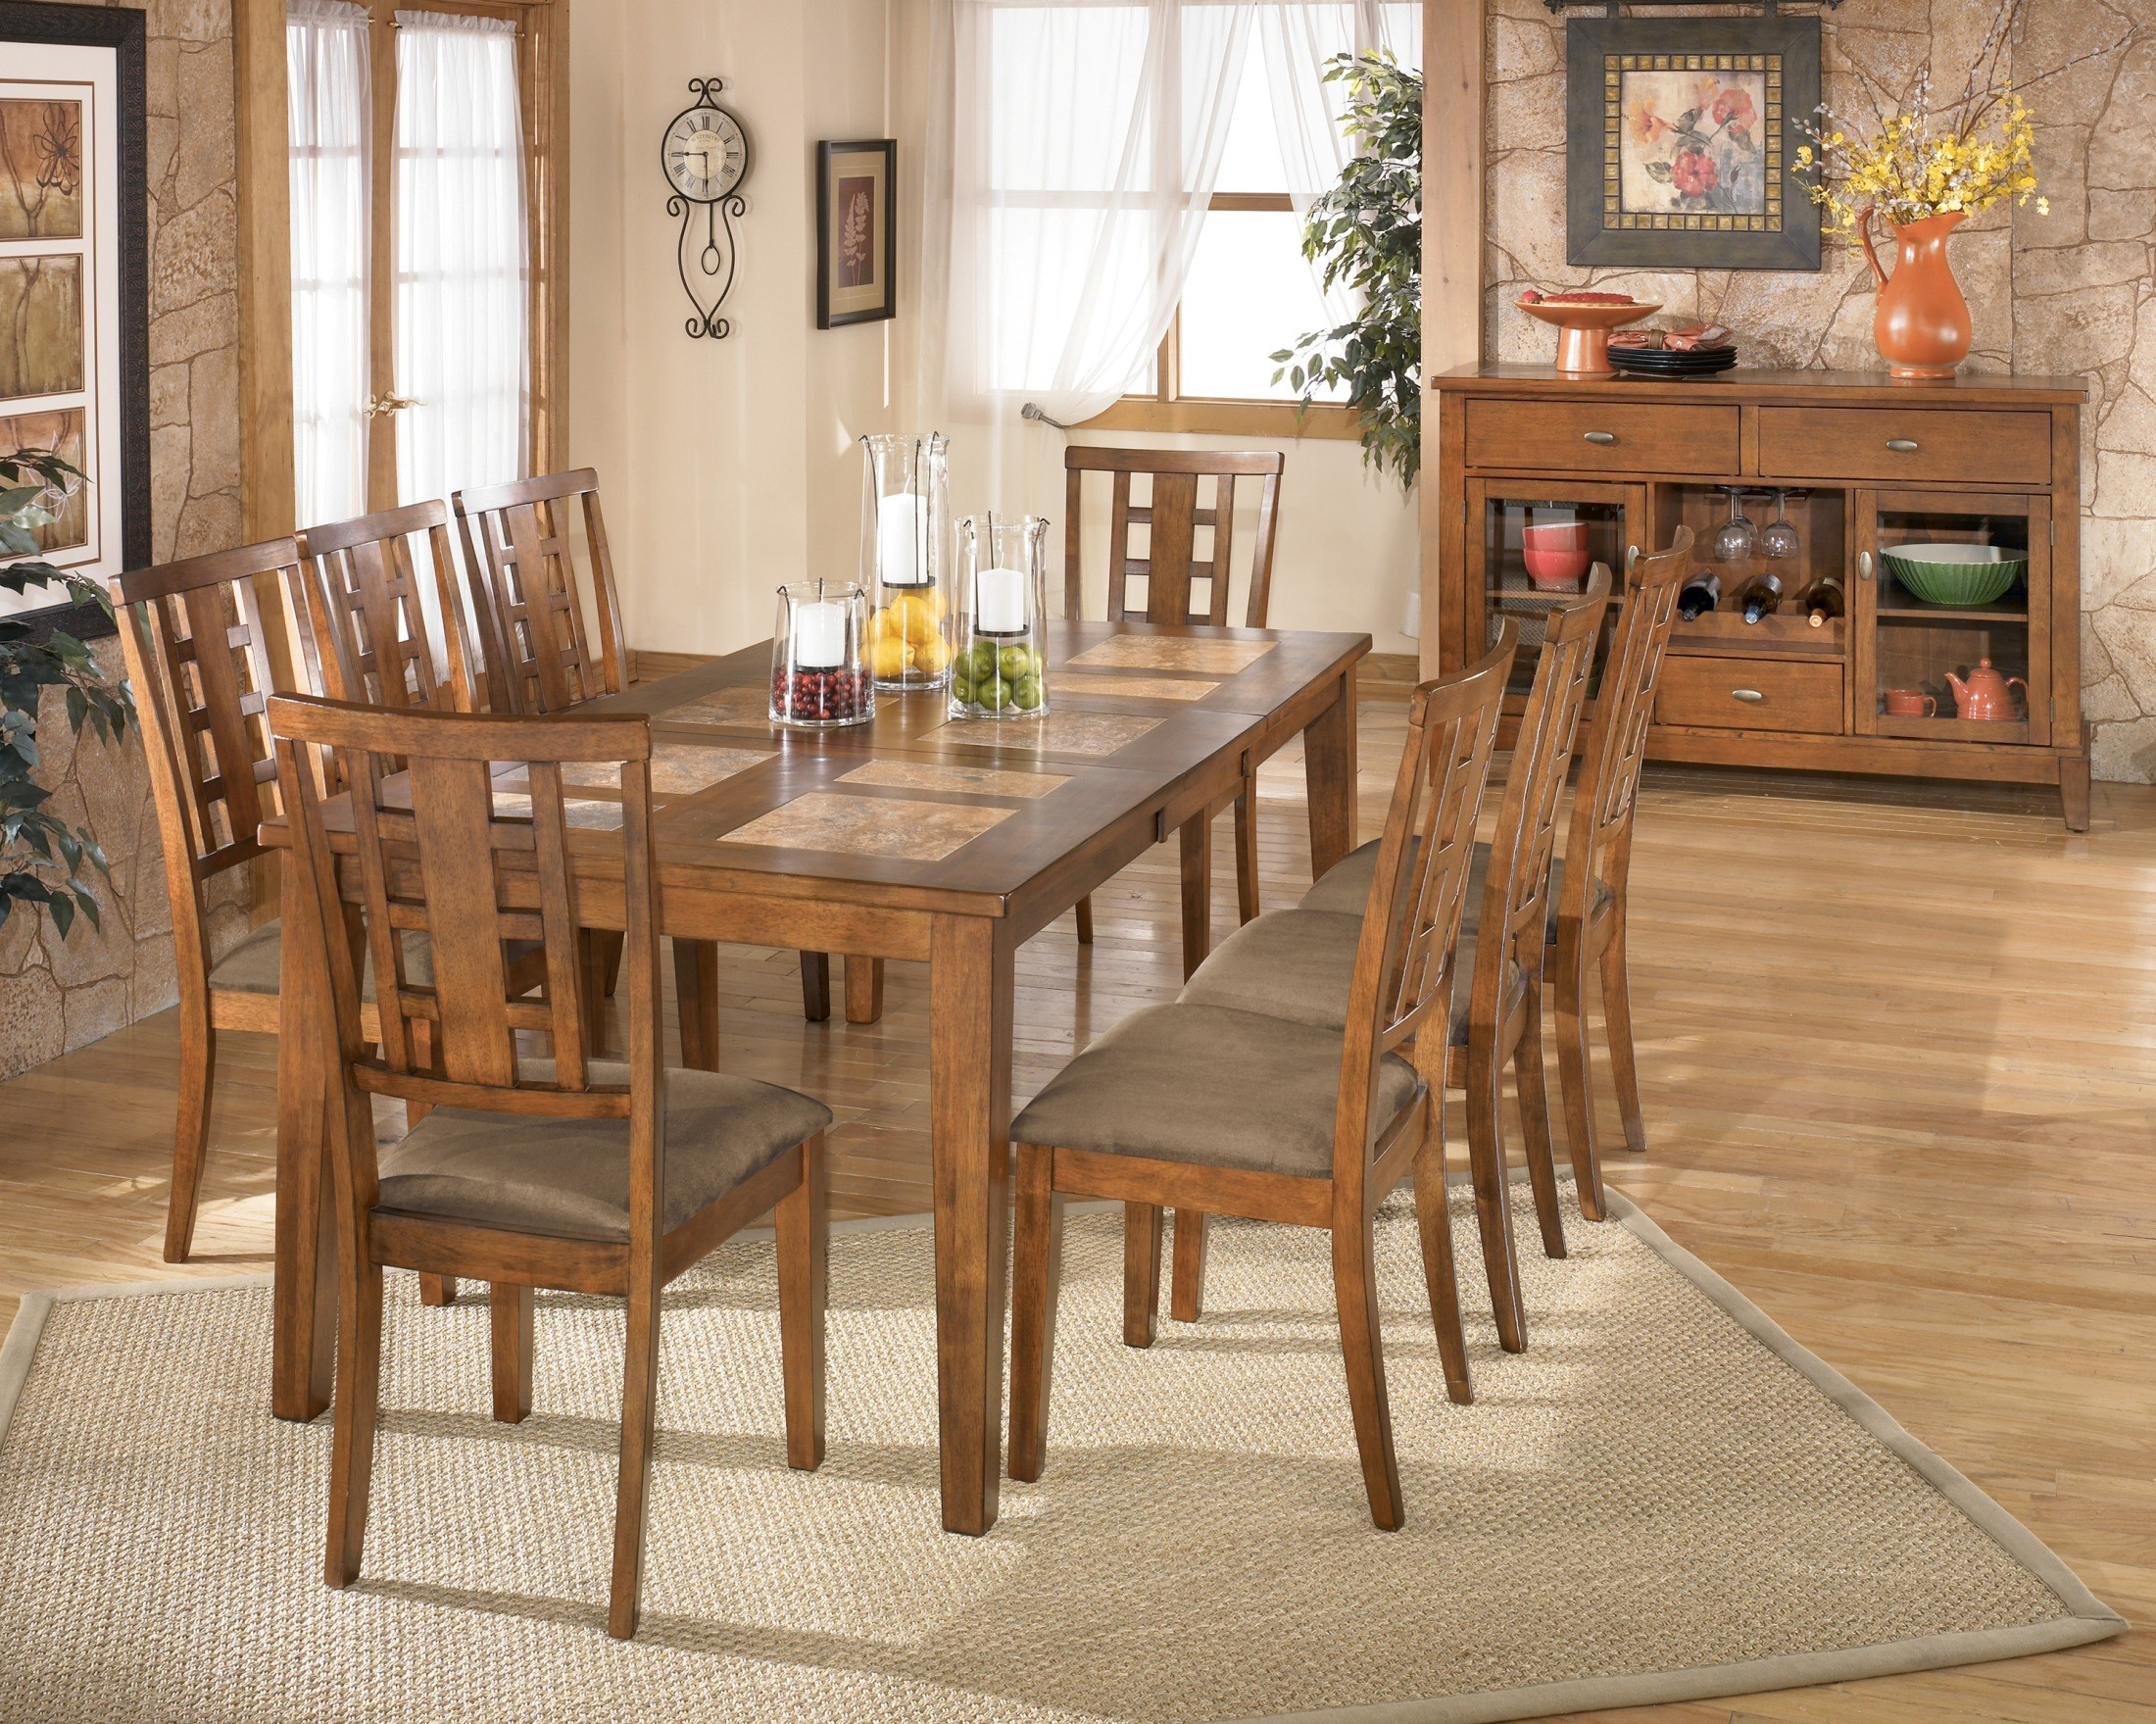 Tucker Dining Room Set By Ashley Furniture D458 Dining Room